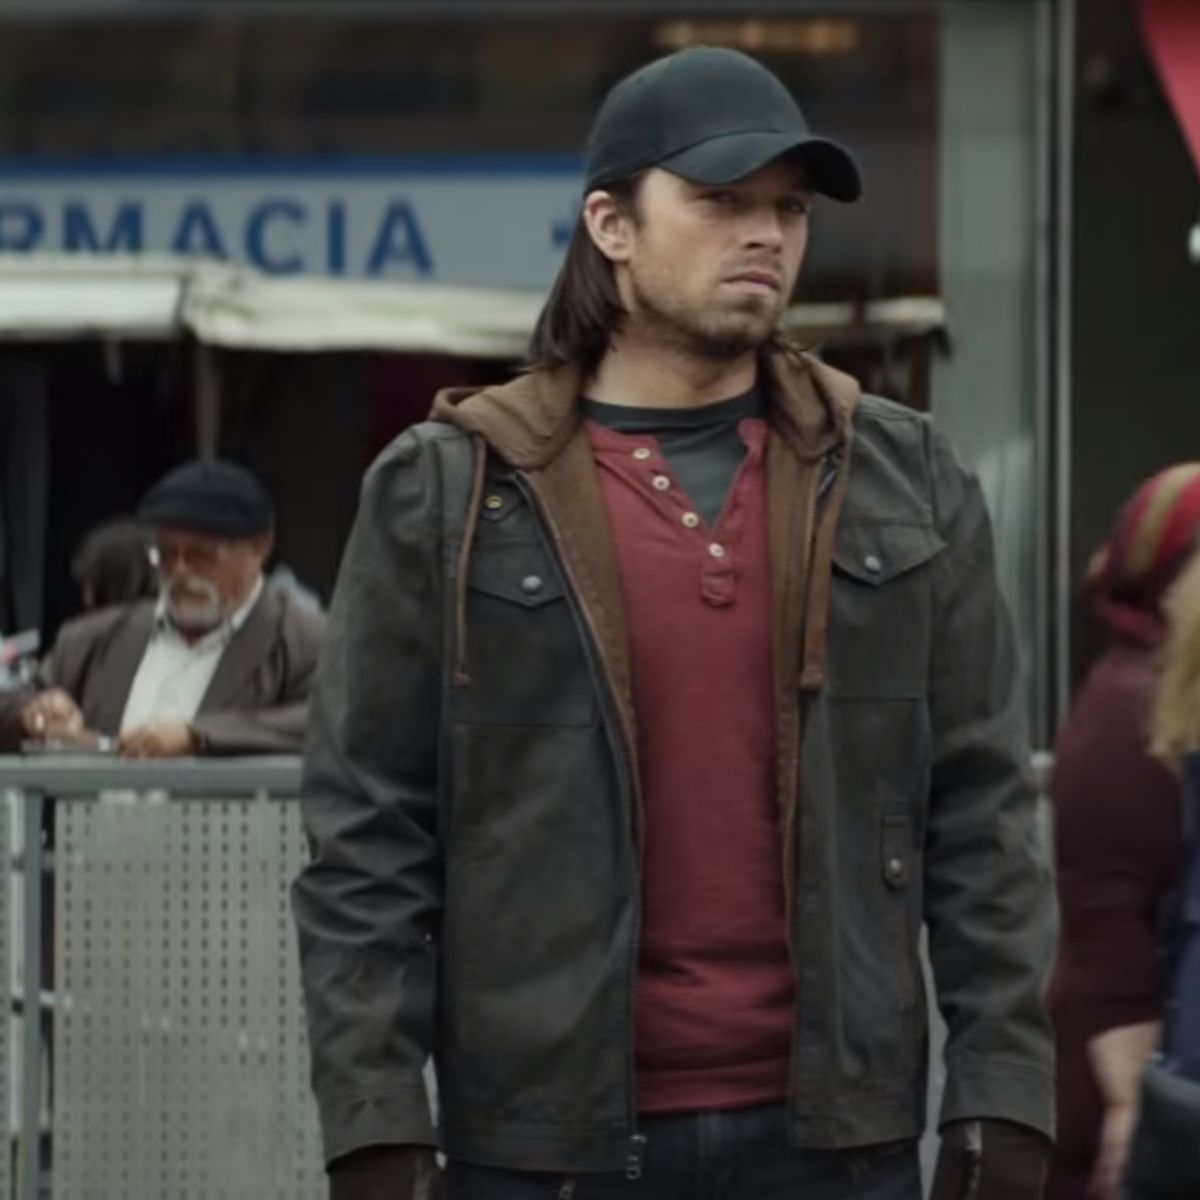 captain-america-civil-war-trailer-Bucky.jpg